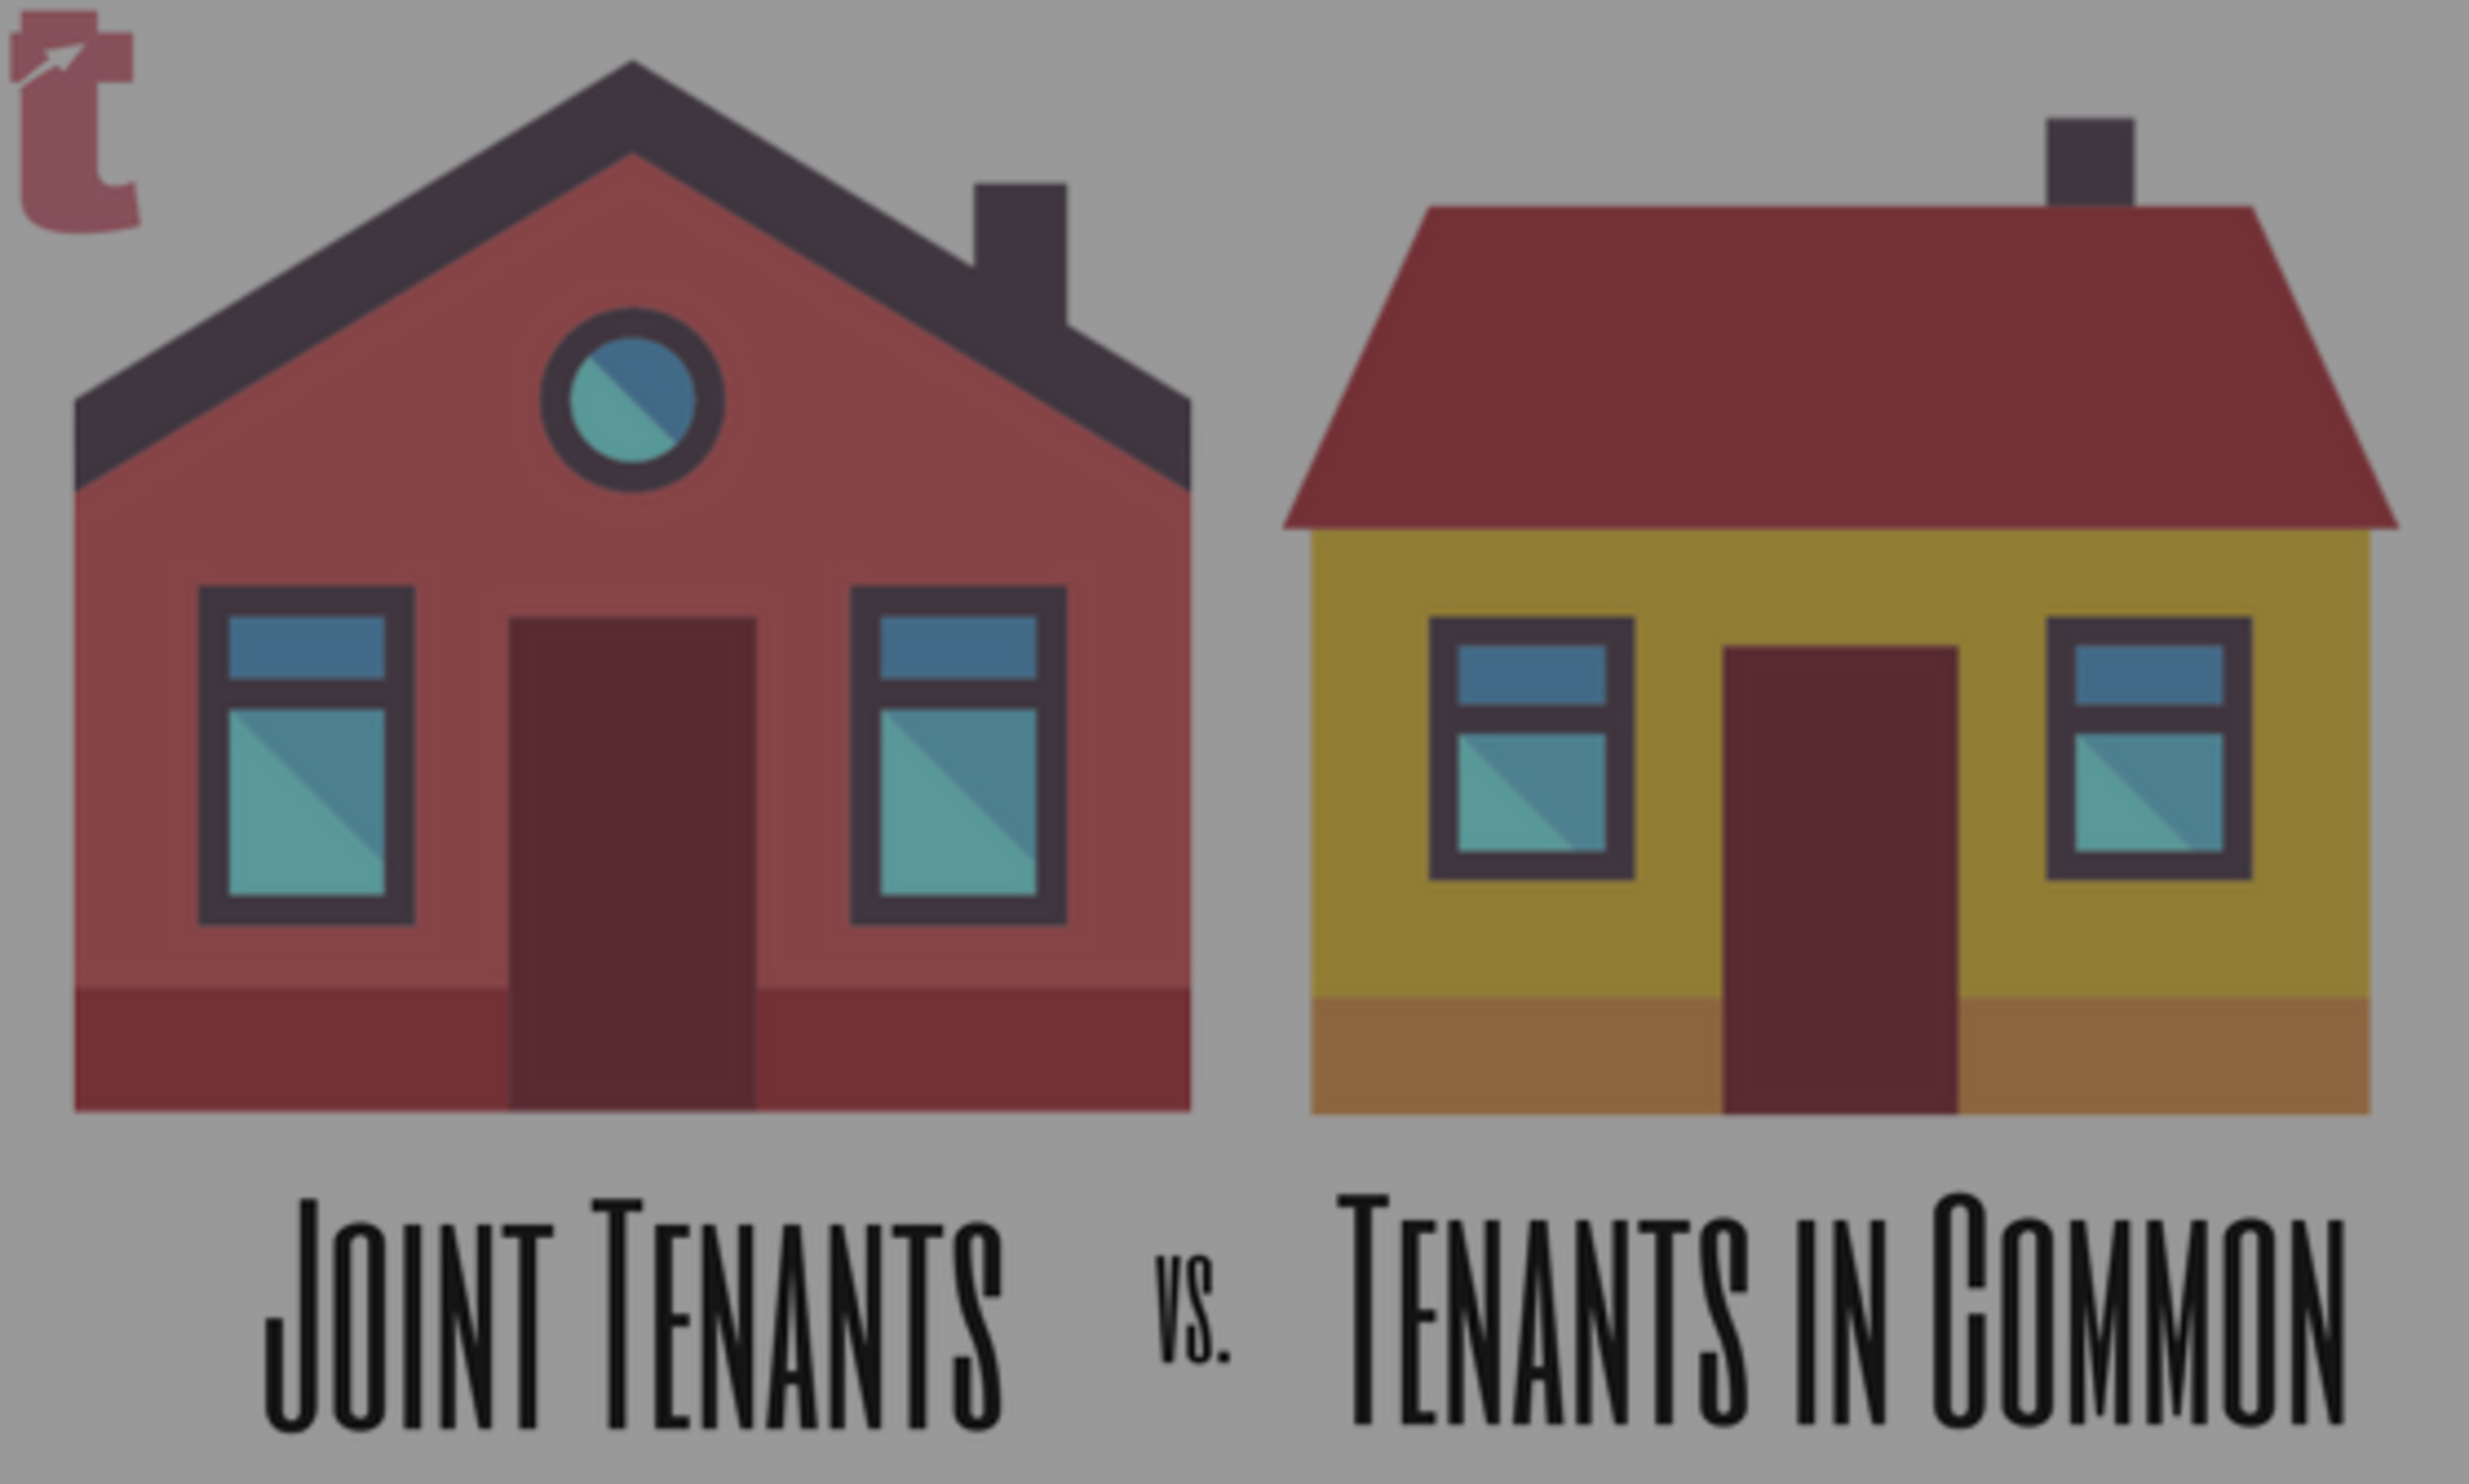 Difference between Joint Tenants and Tenants in Common